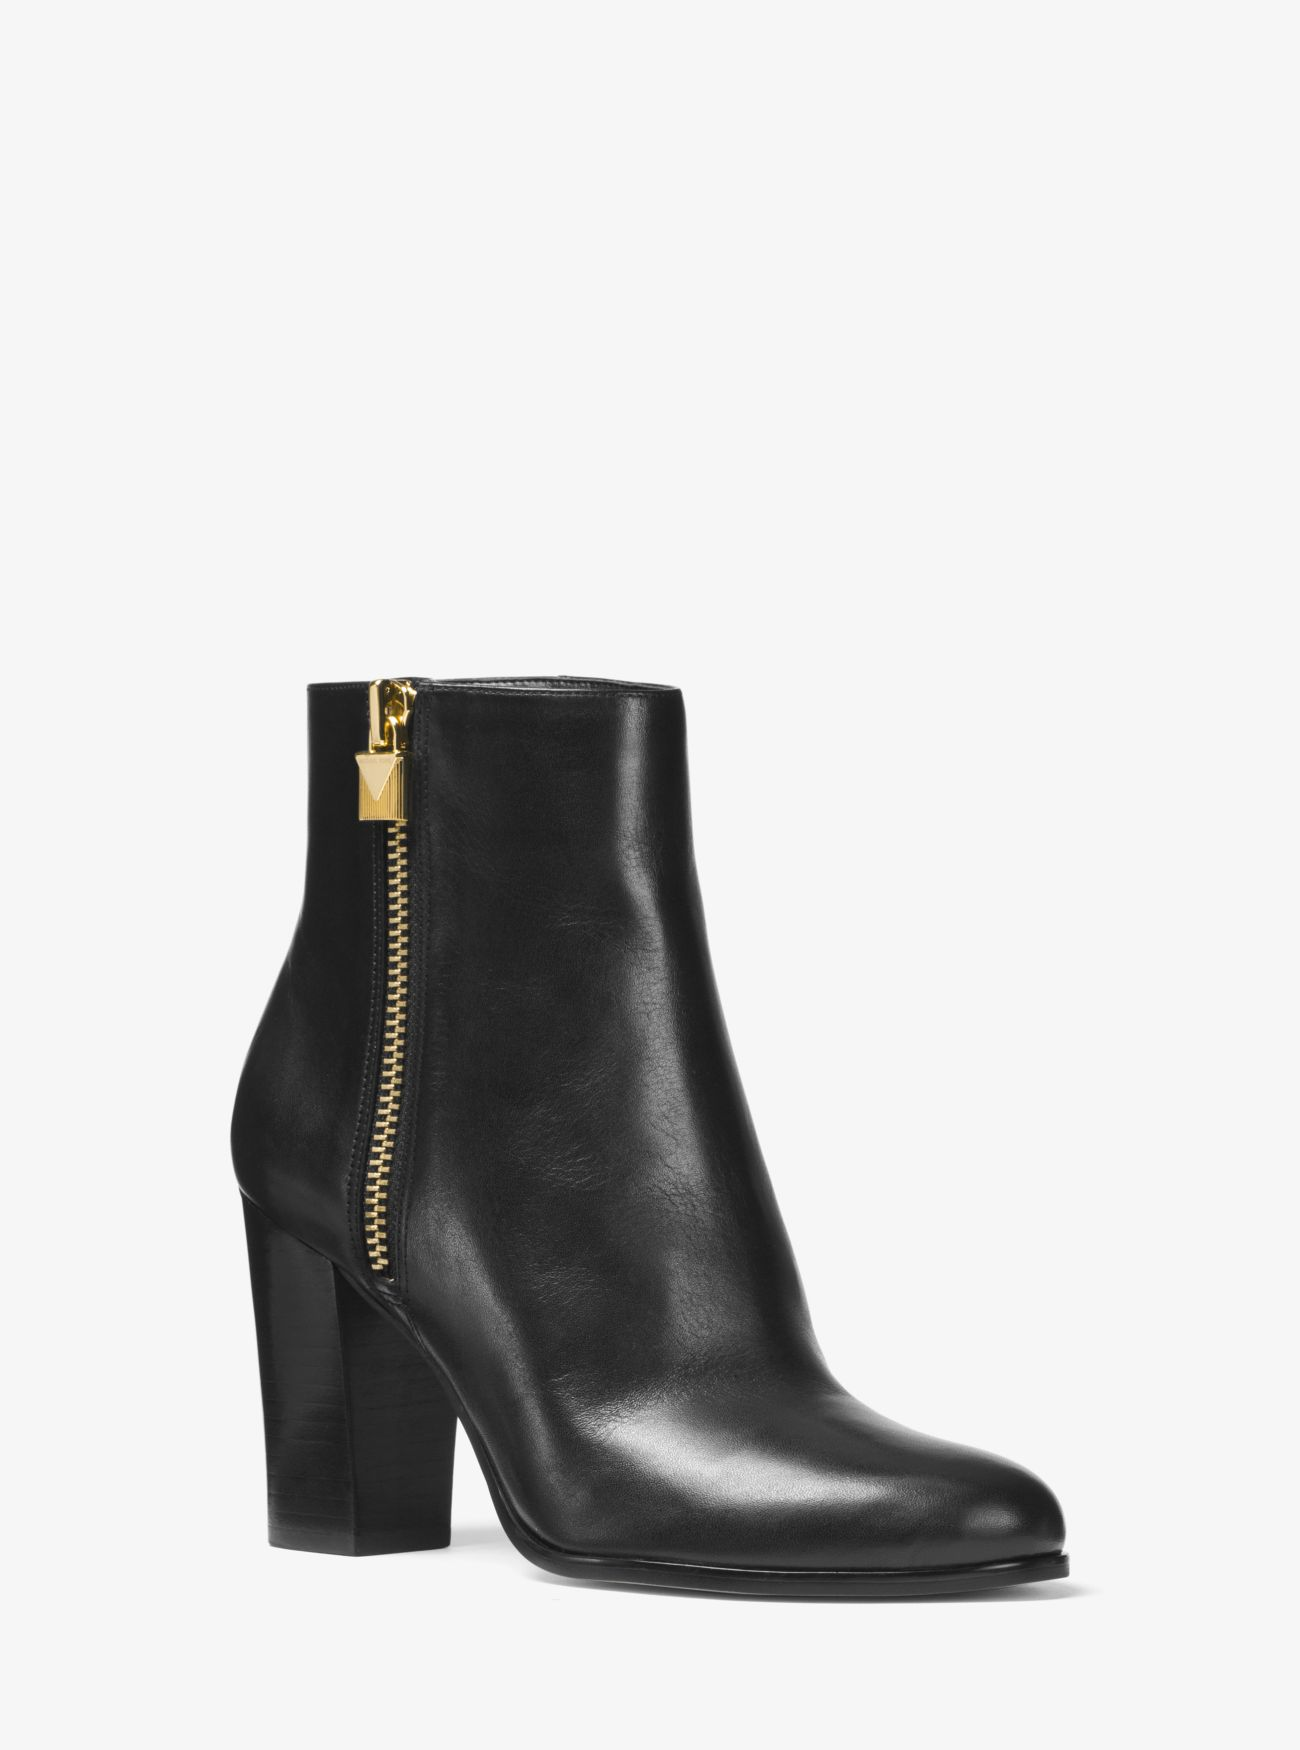 Margaret Leather Ankle Boot   Michael Kors